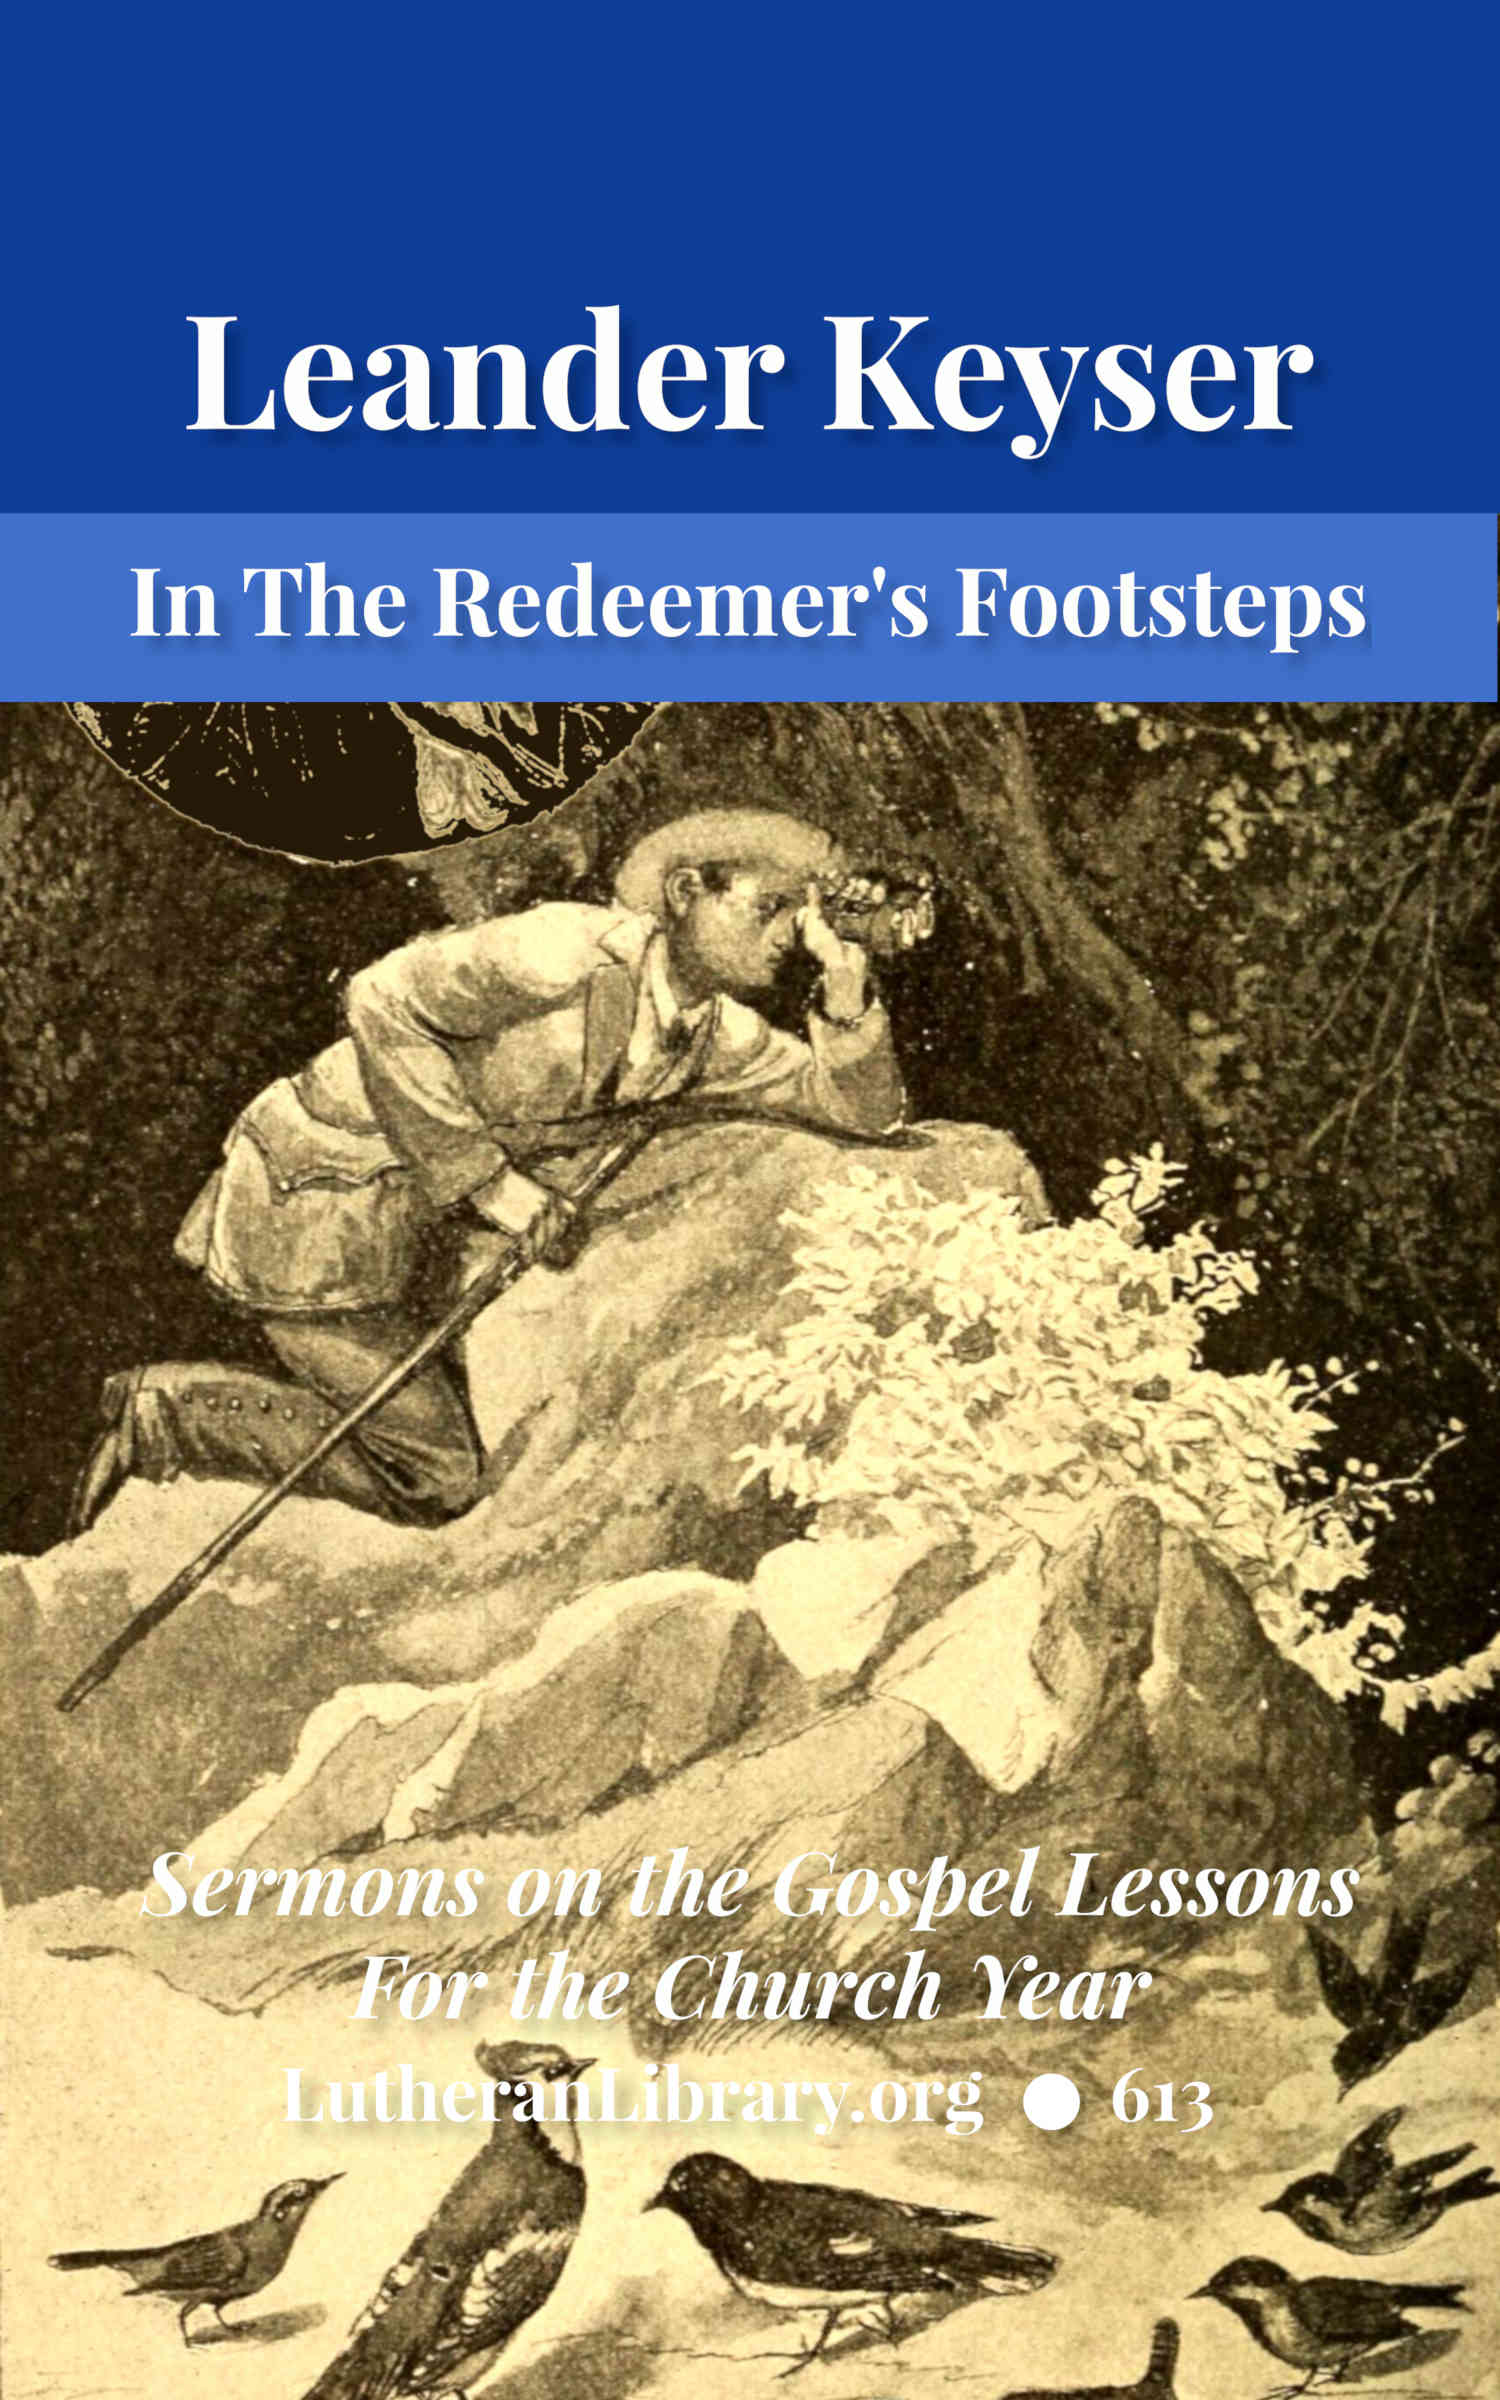 In The Redeemer's Footsteps by Leander Keyser